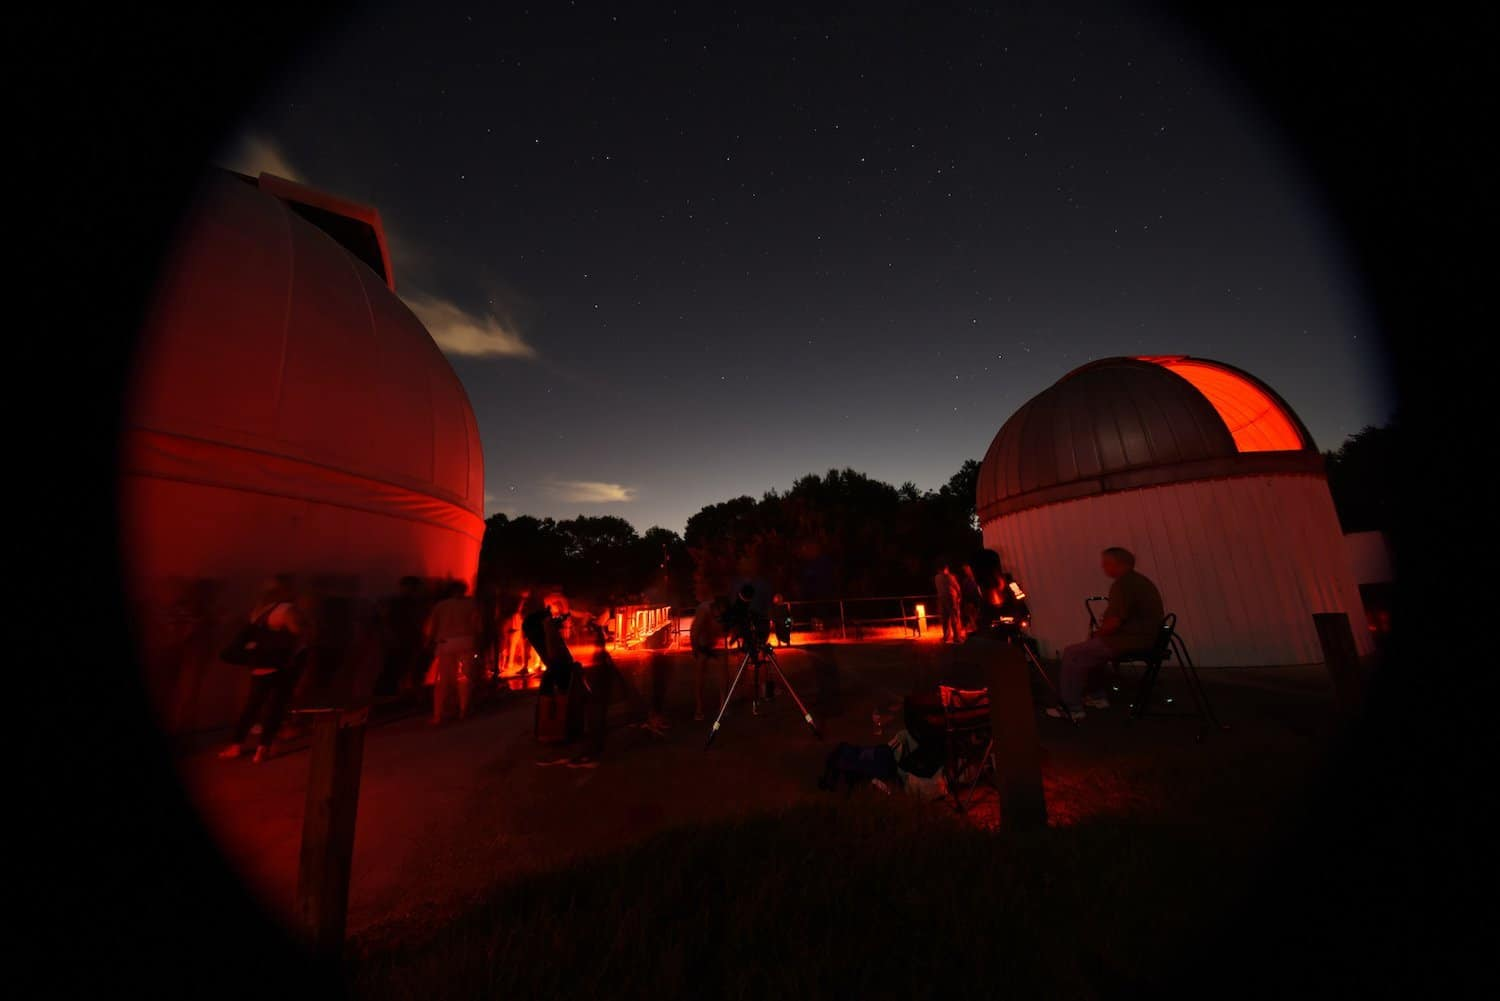 Stargazing in Houston - The George Observatory - geojoetx via Flickr